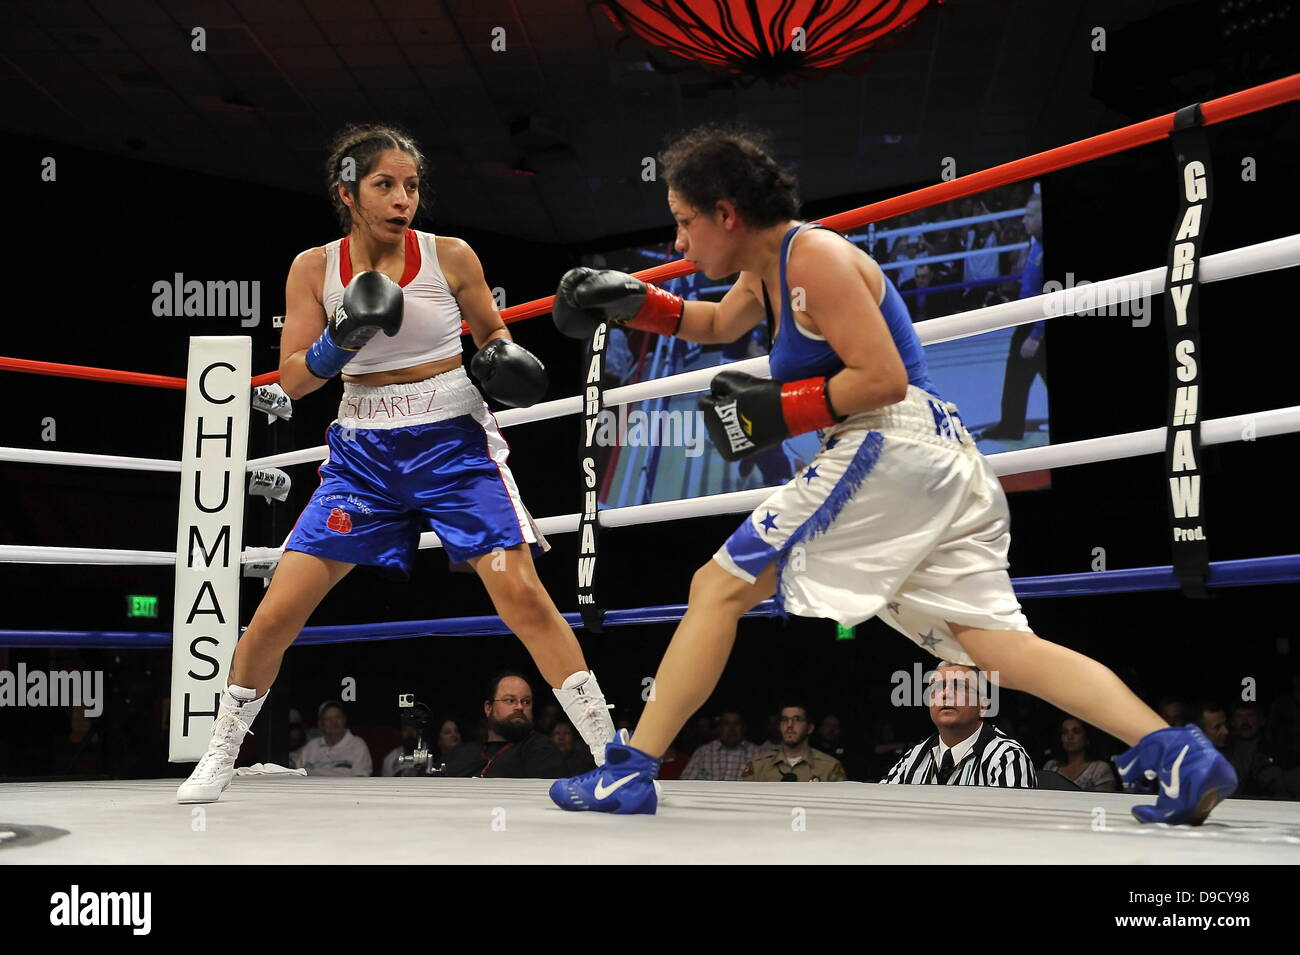 Maggie Suarez Blue Trunks Defeated Elizabeth Cervantes During A Bout At The Central Coast Boxing Championship At The Chumash Casino Resort In Santa Ynez